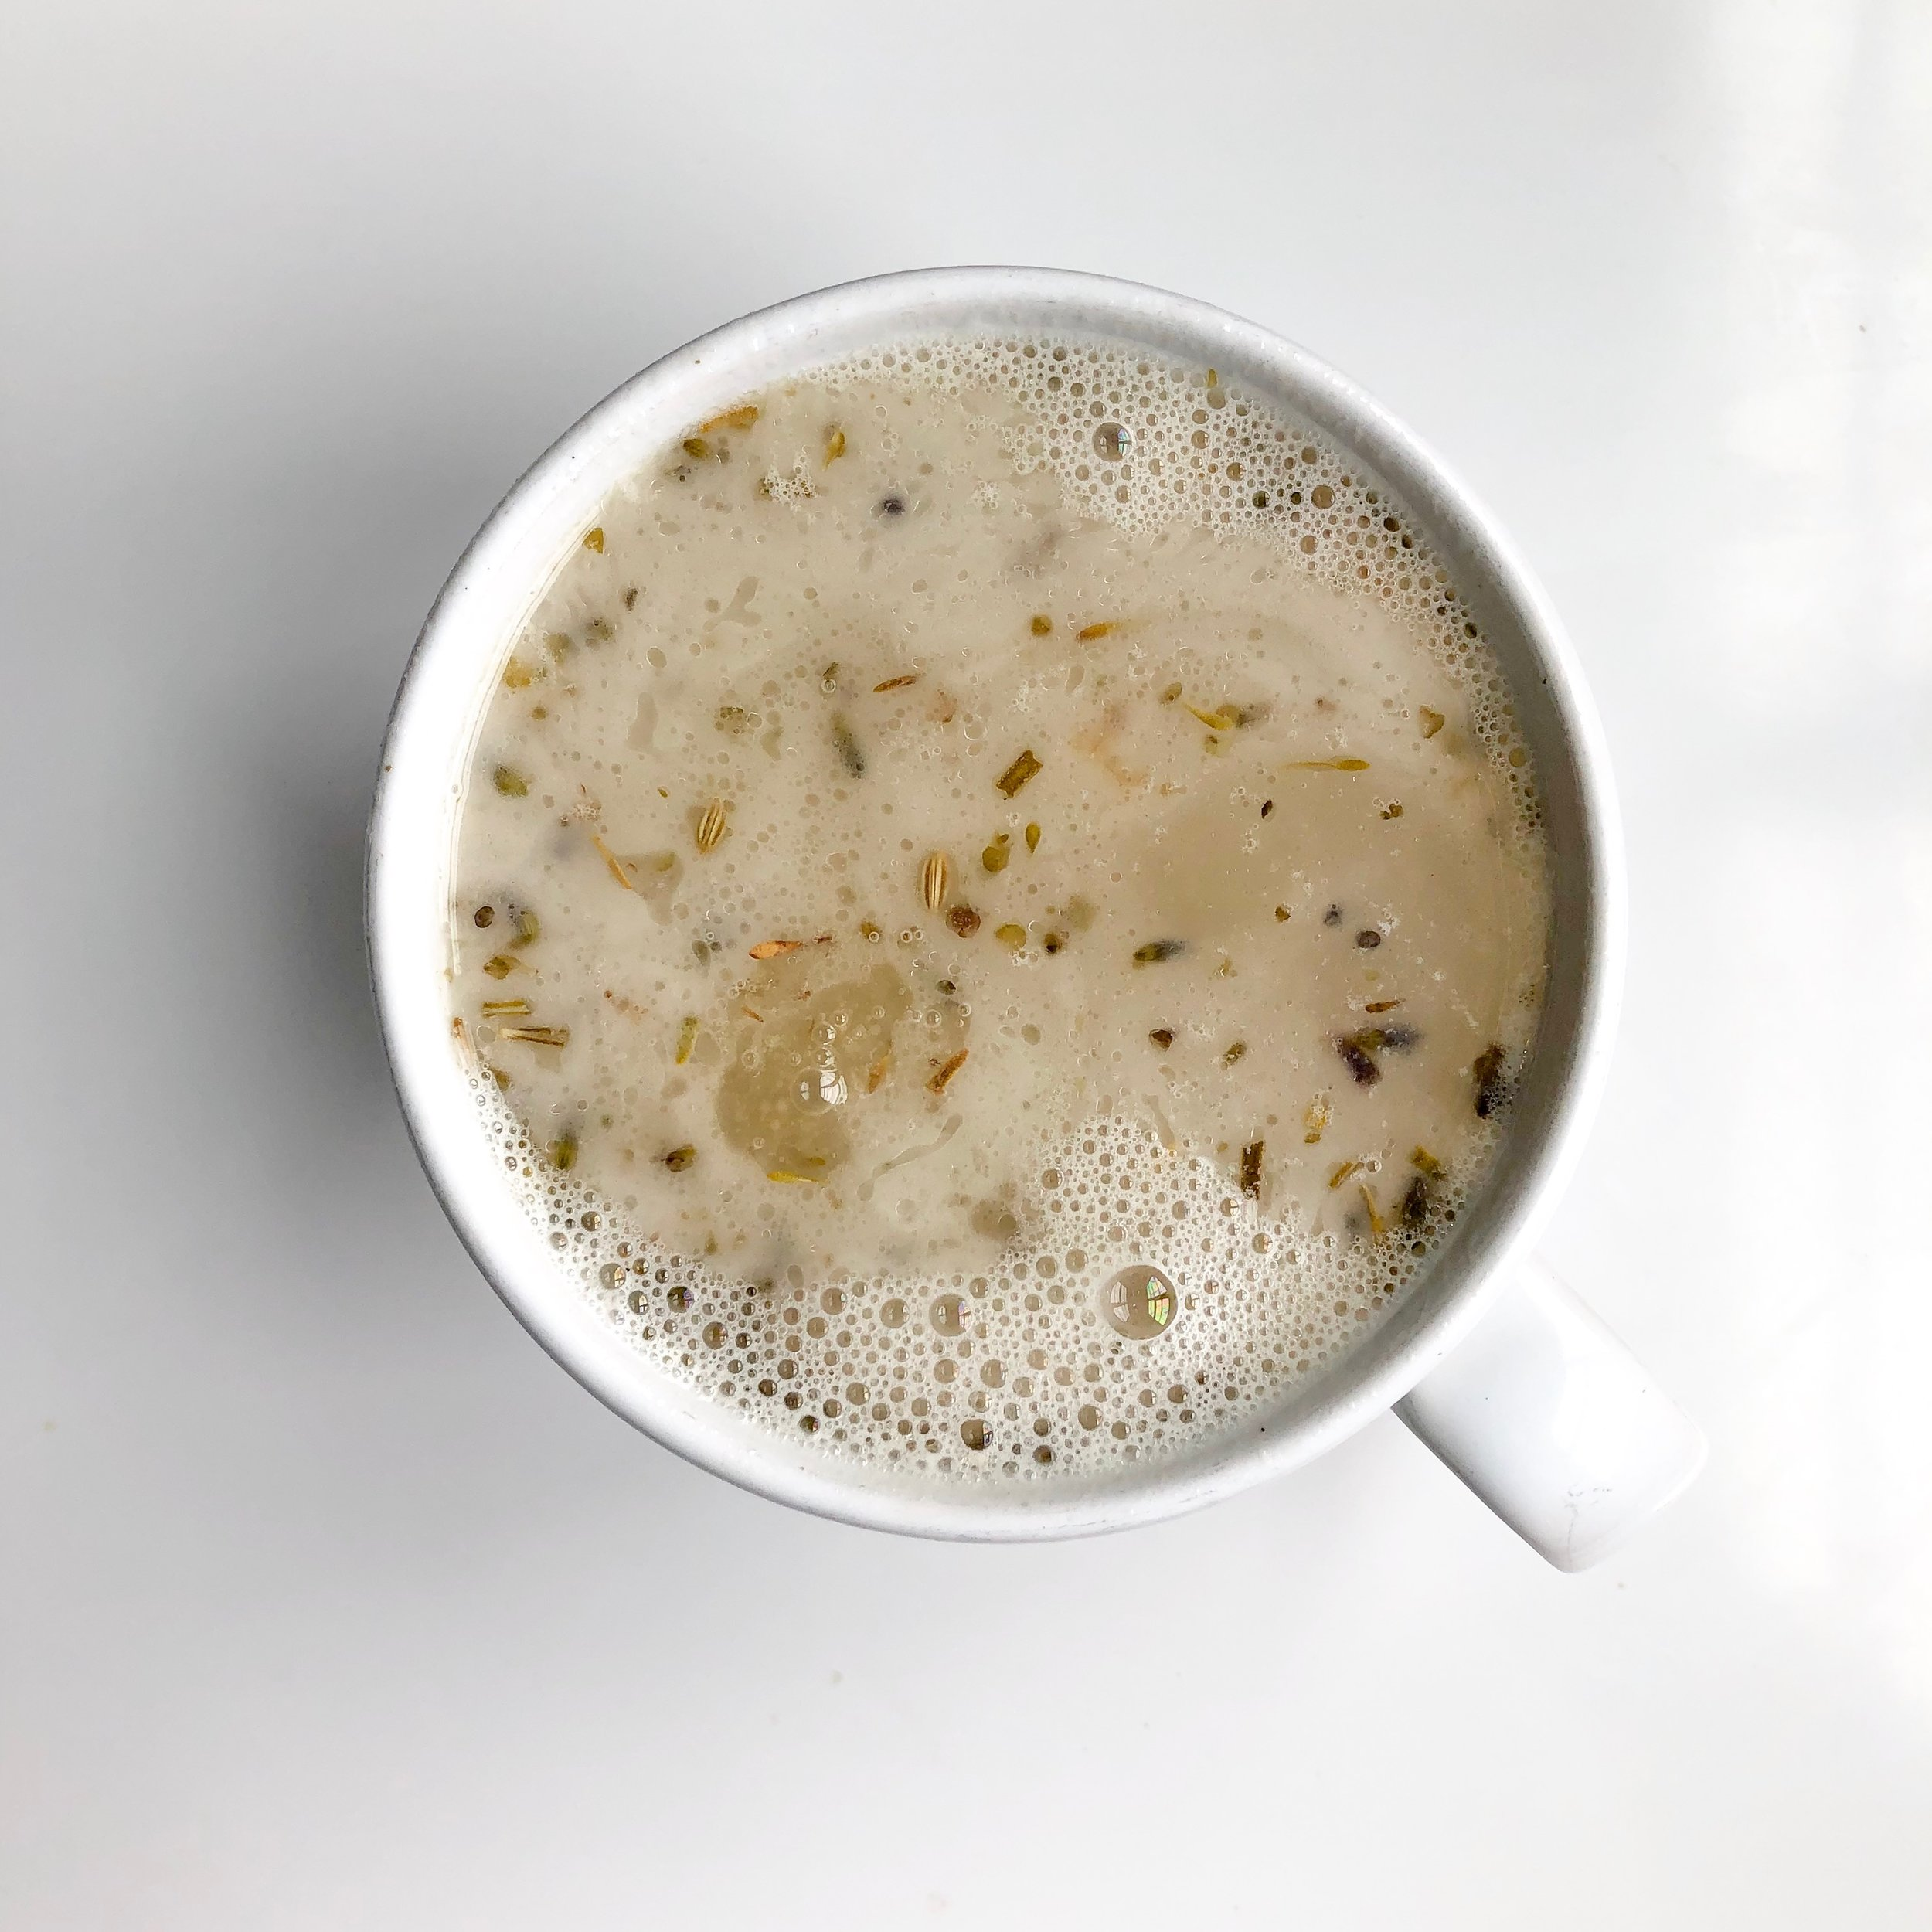 Rosemary -RedPepper - 1 c of chicken bone broth1/2 c of water1 tbsp of dairy-free butter 1 tbsp of lemon juice3/4 tsp of rosemary1/4 tsp of onion powderBlack Himalayan sea salt, cracked pepper, and red pepper flakes to taste